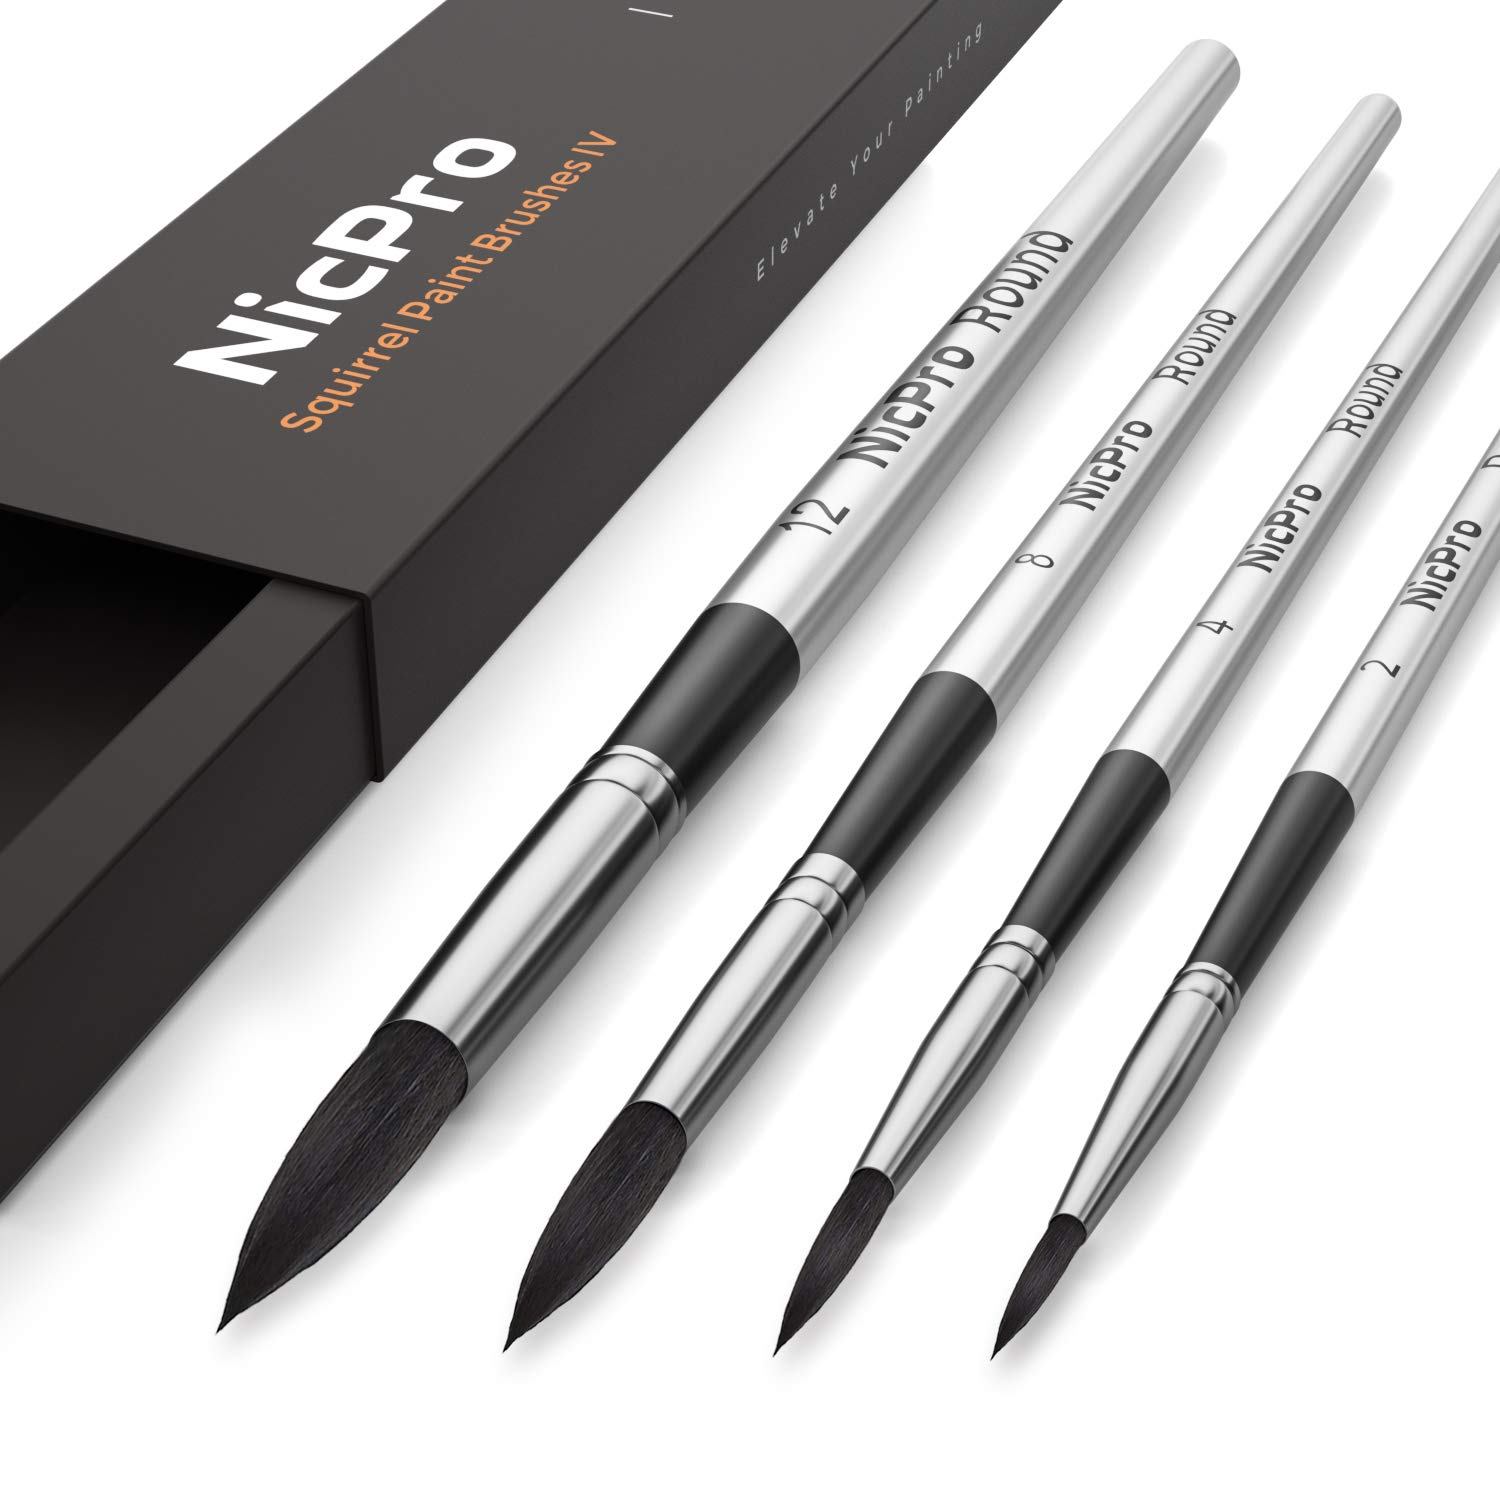 Nicpro 4 PCS Professional Watercolor Paint Brush Set, Artist Squirrel Paint Brushes Round for Painting Gouache Mop by Nicpro